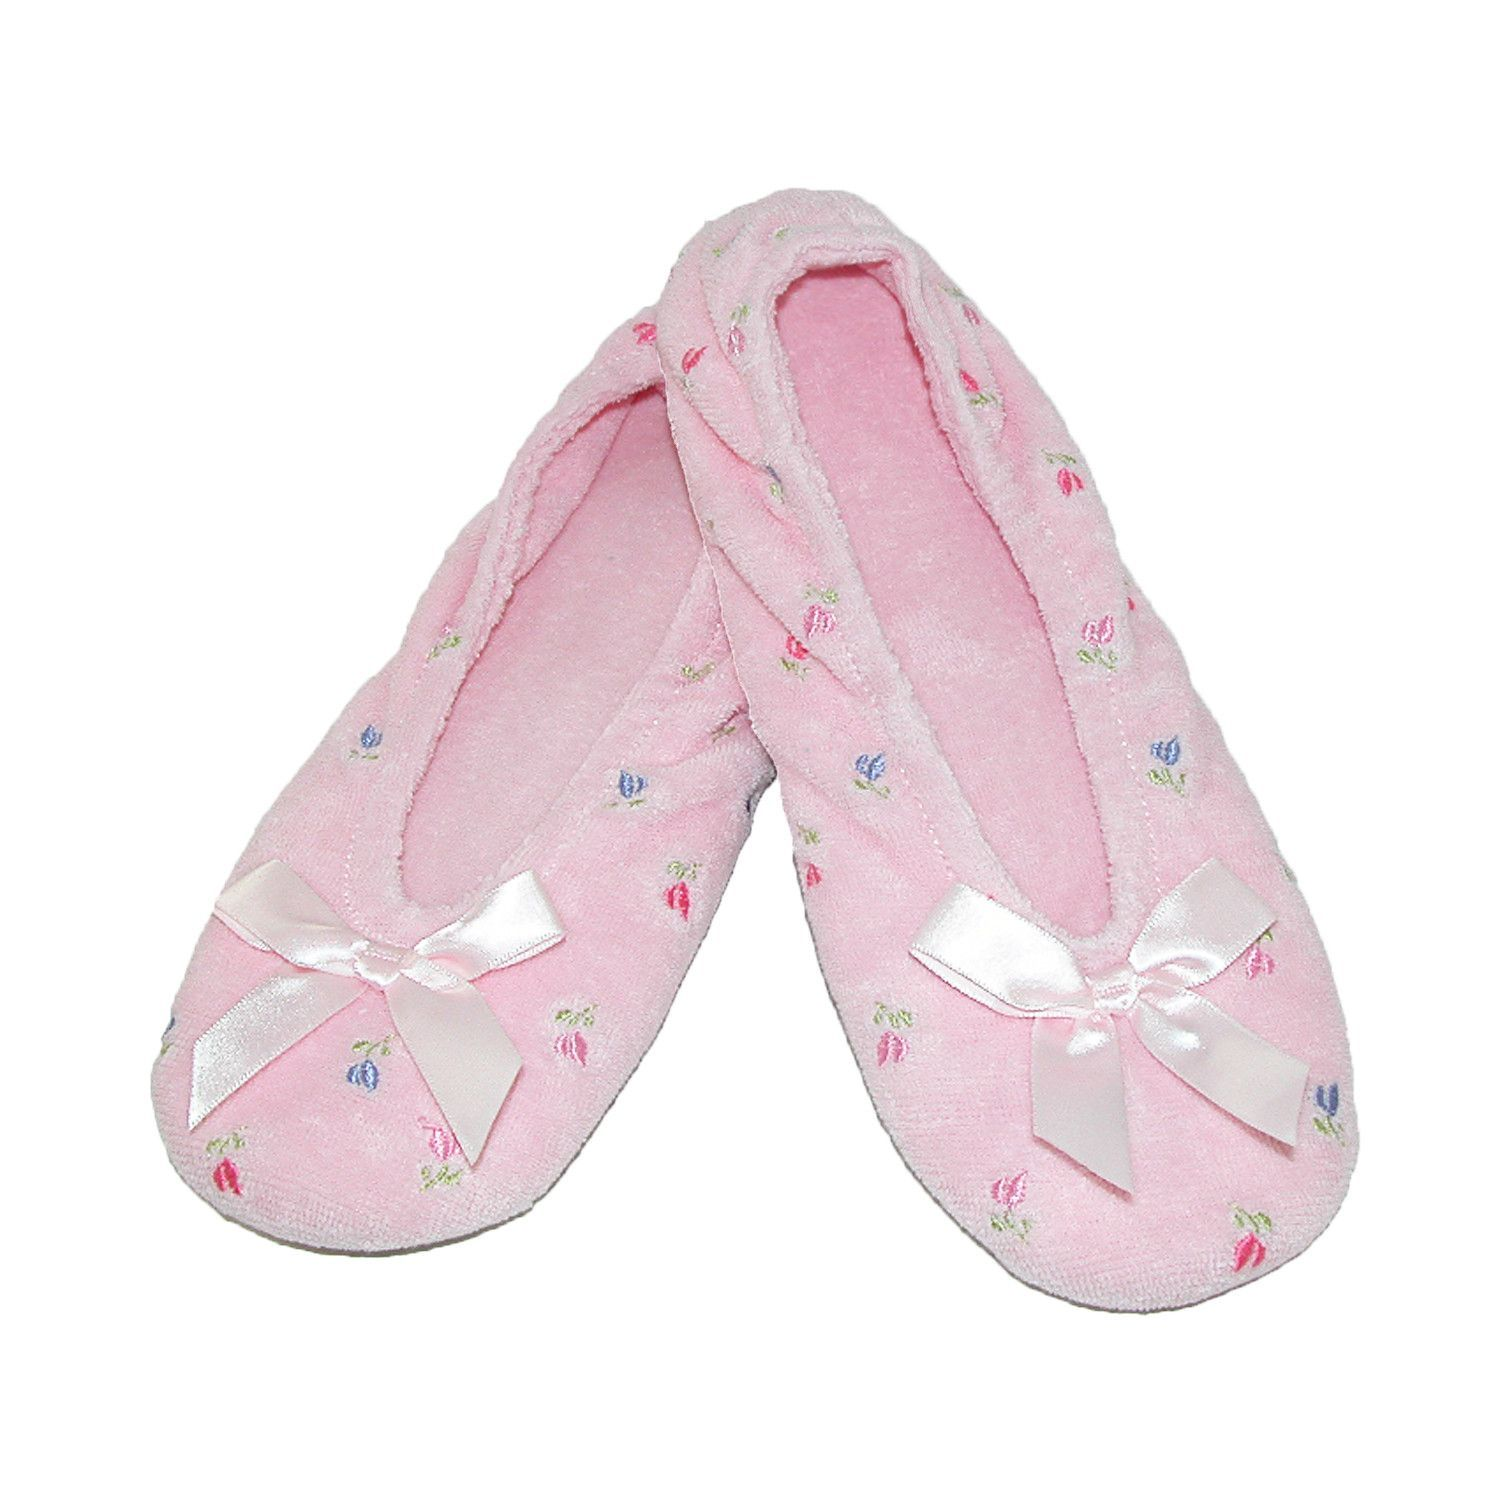 8118e9ea3c51c7 totes ISOTONER Womens Embroidered Terry Ballerina Slippers ...